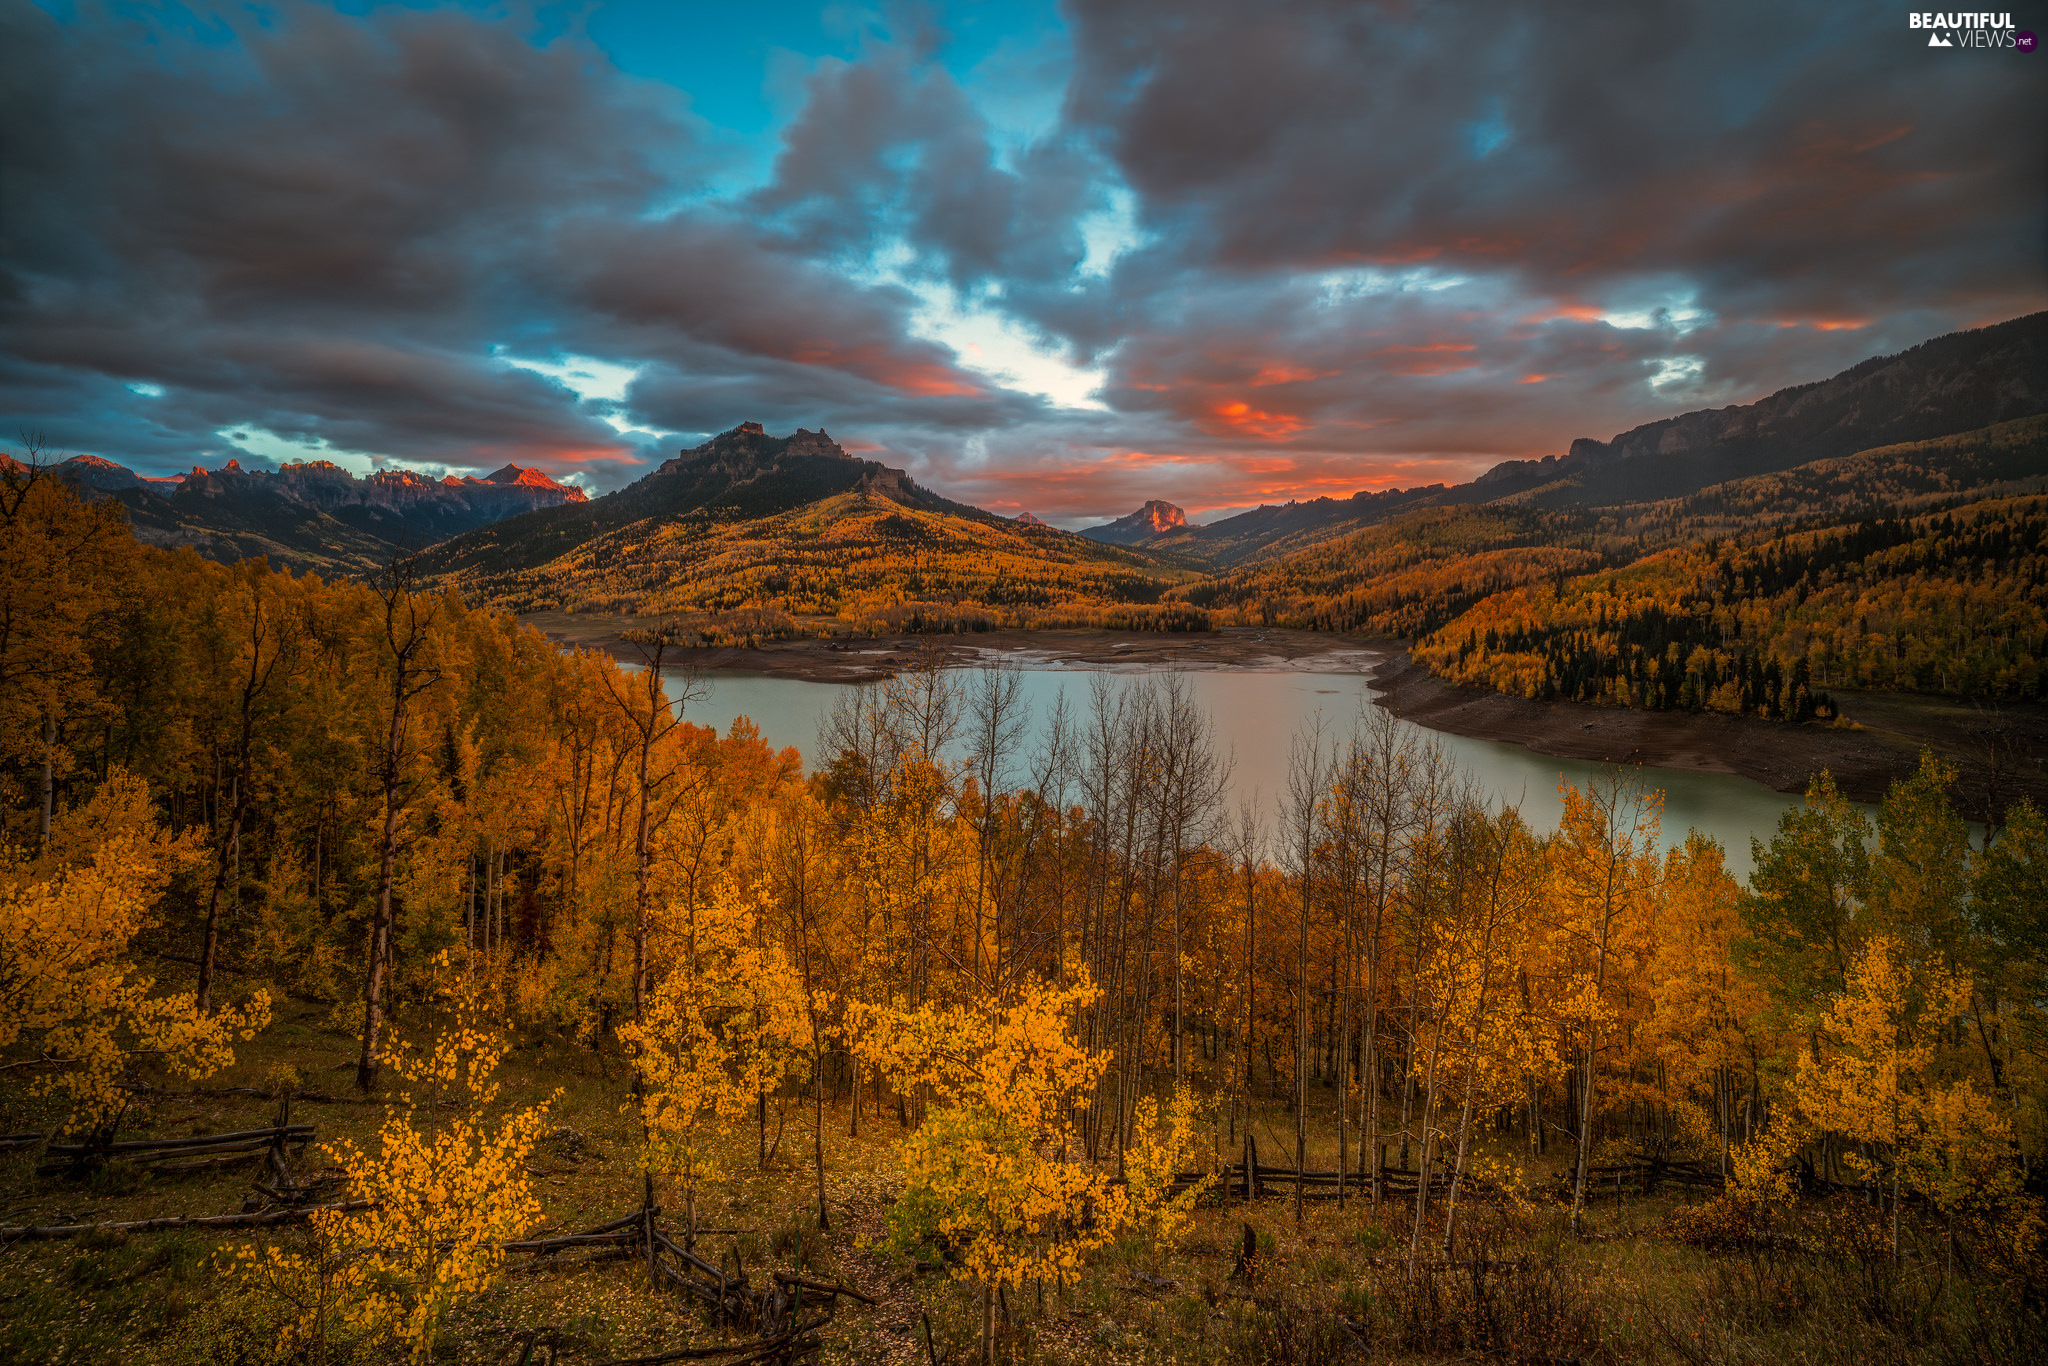 trees, lake, autumn, forest, Mountains, viewes, clouds